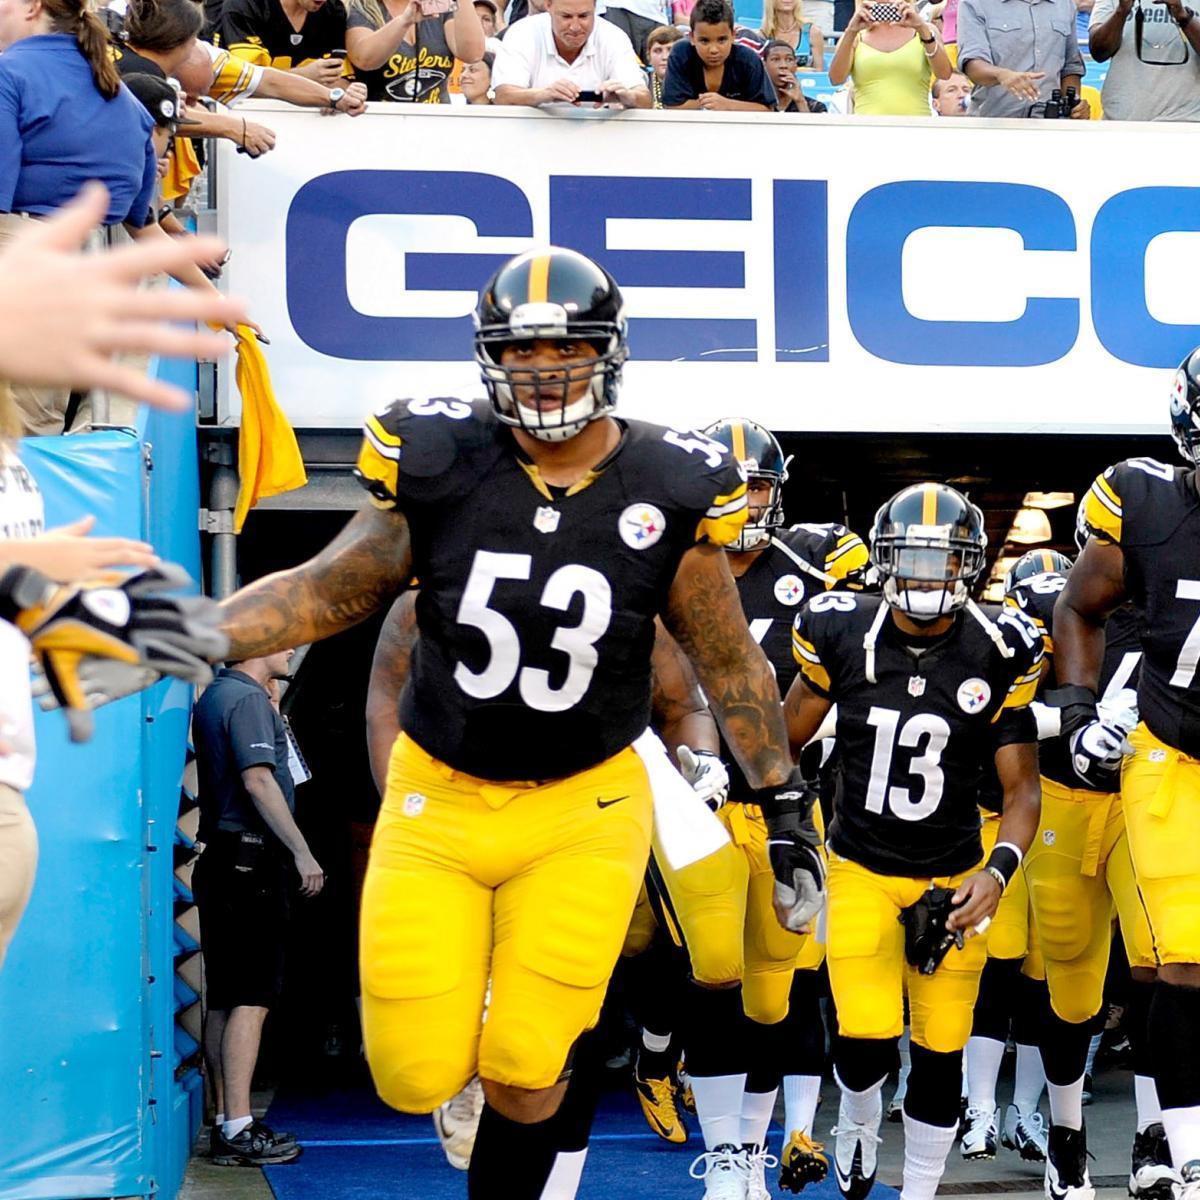 Blazer Team Roster 2013: Pittsburgh Steelers 2013 Team Roster: Report Card Grades